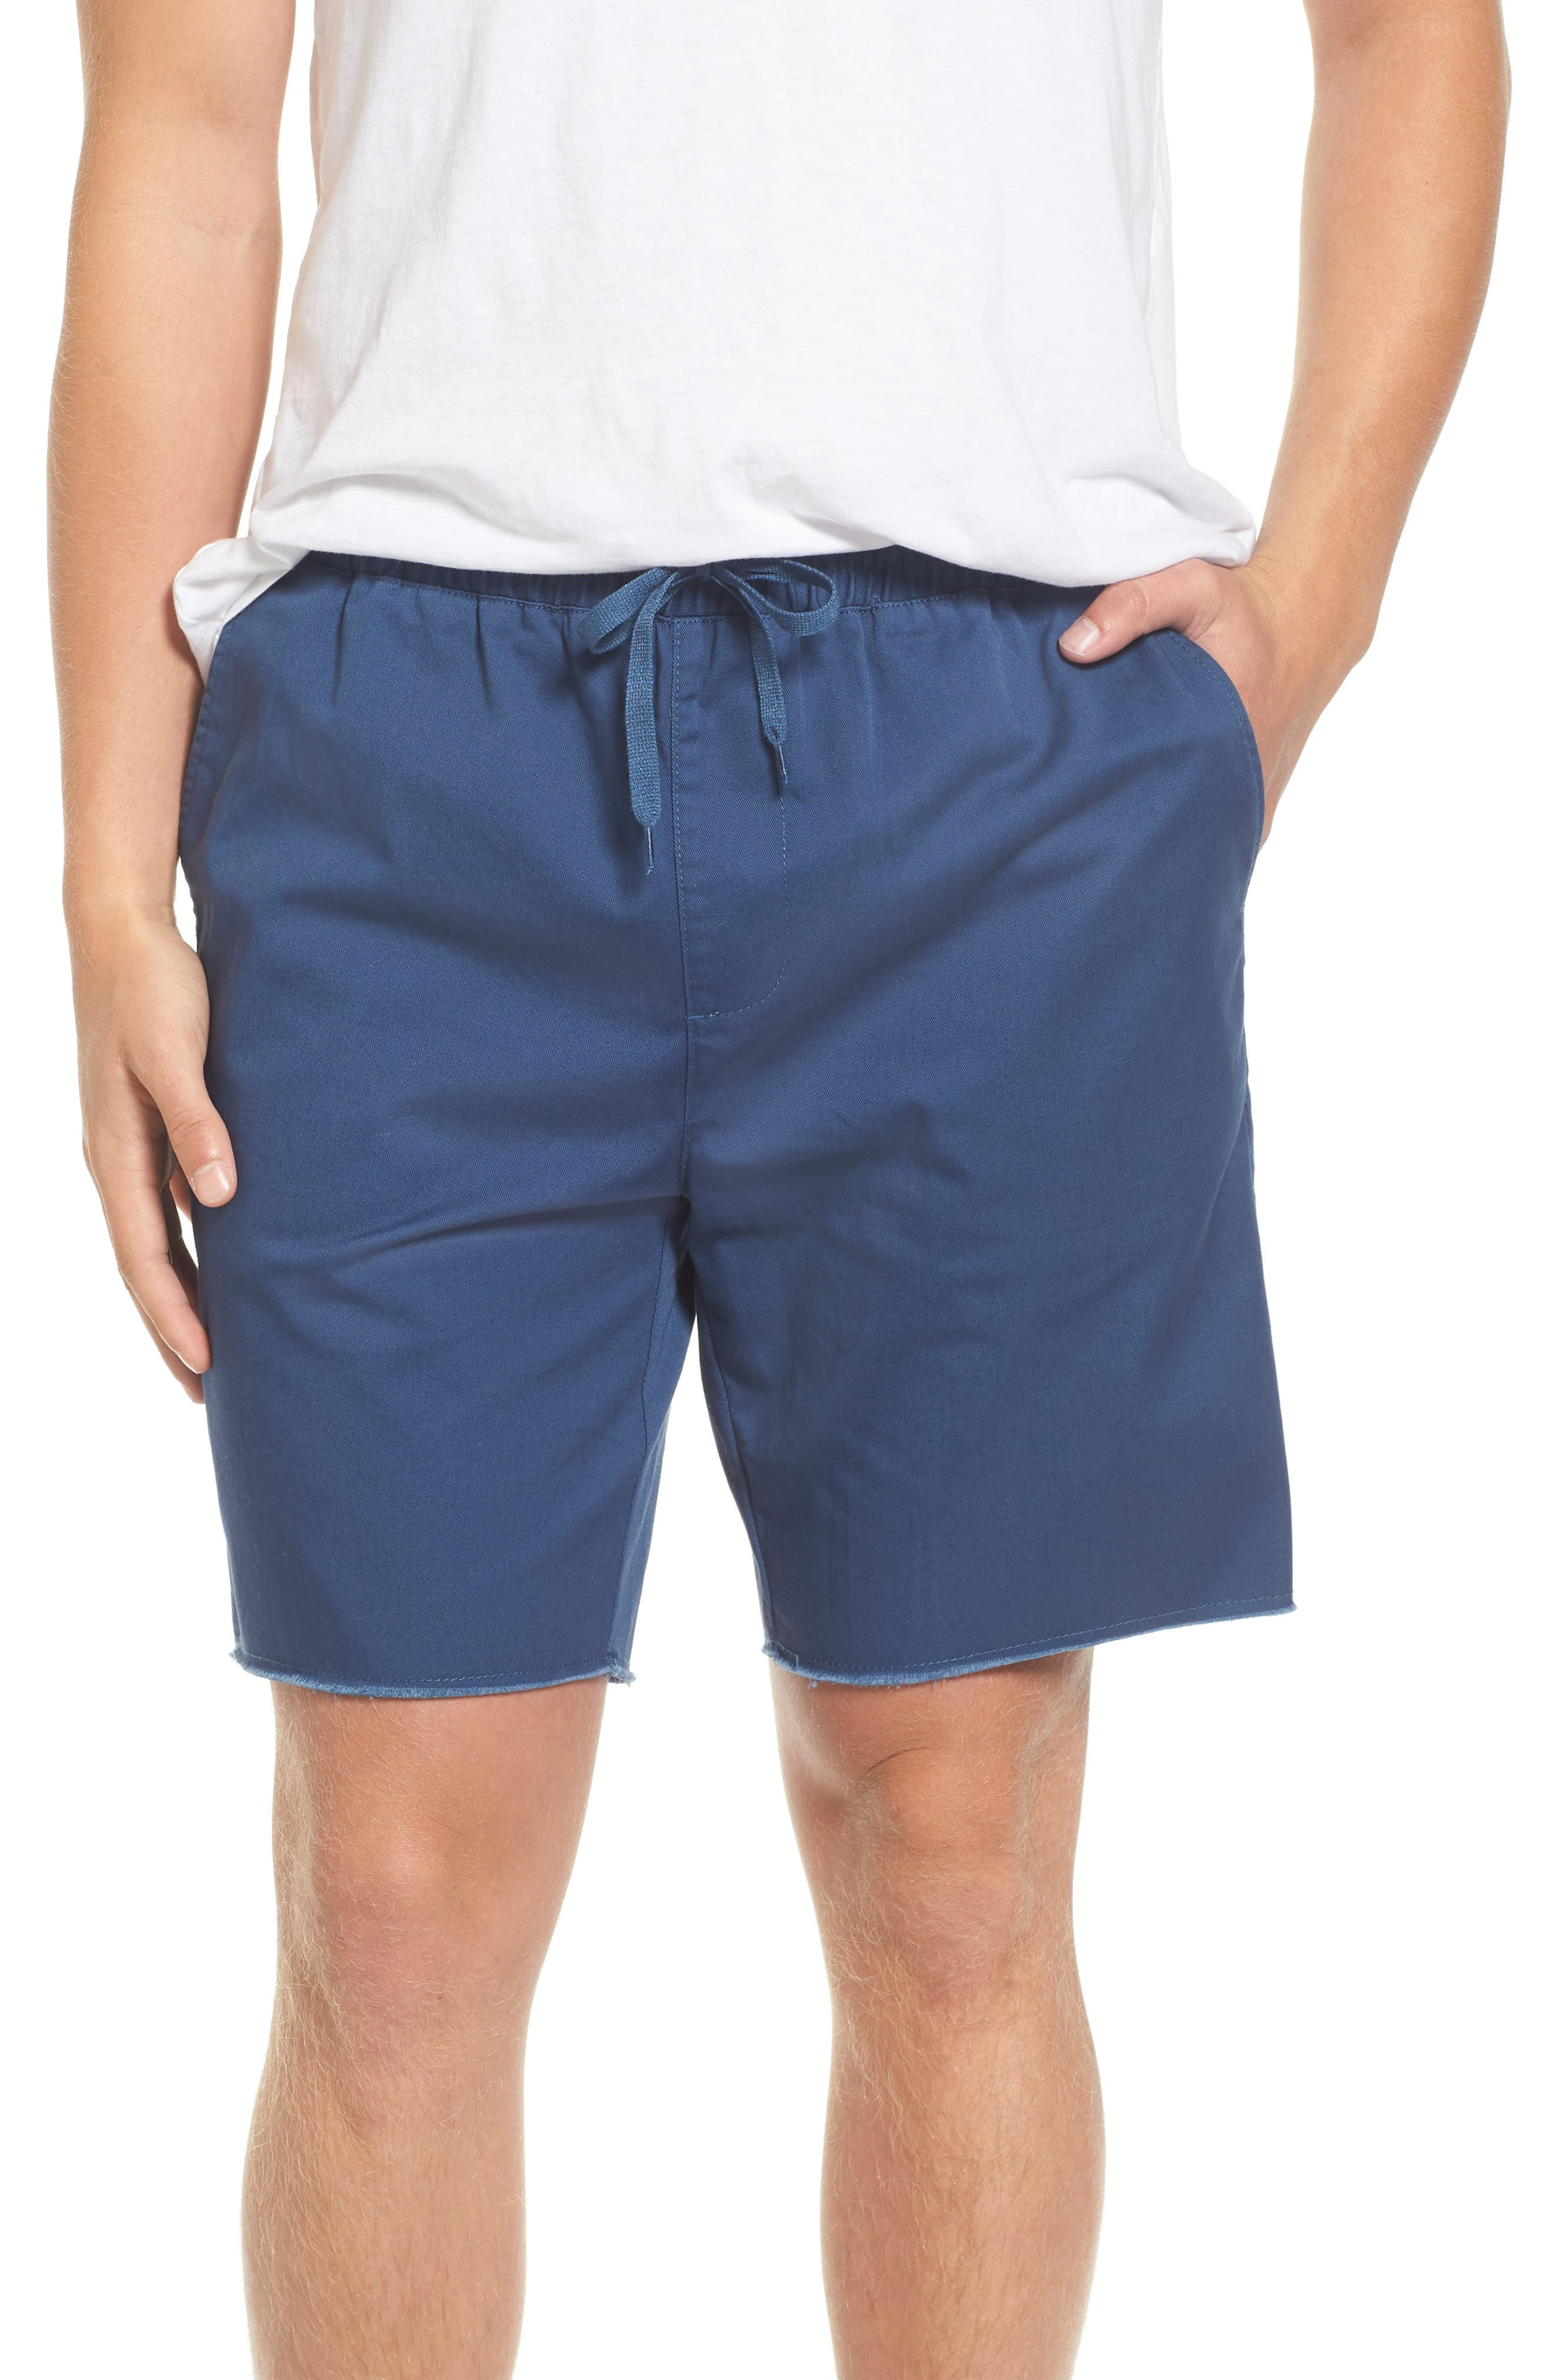 Alternate Image 1 Selected - RVCA Dayshift Drawstring Shorts